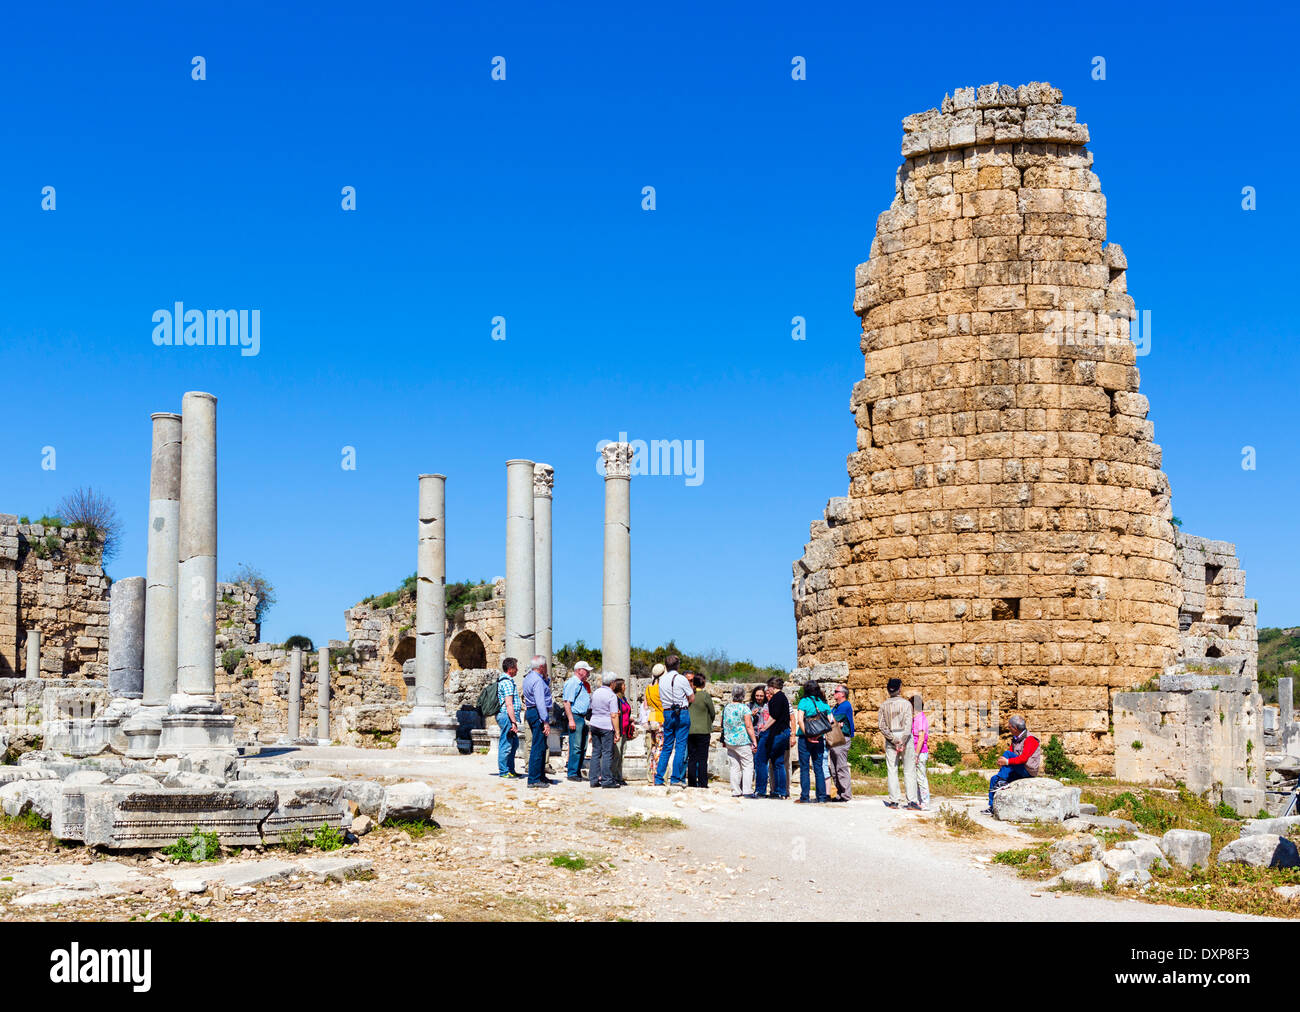 Area near the Hellenistic Gate in the ruins of the ancient Greek city of Perge, Pamphylia, Antalya Province, Turkey - Stock Image